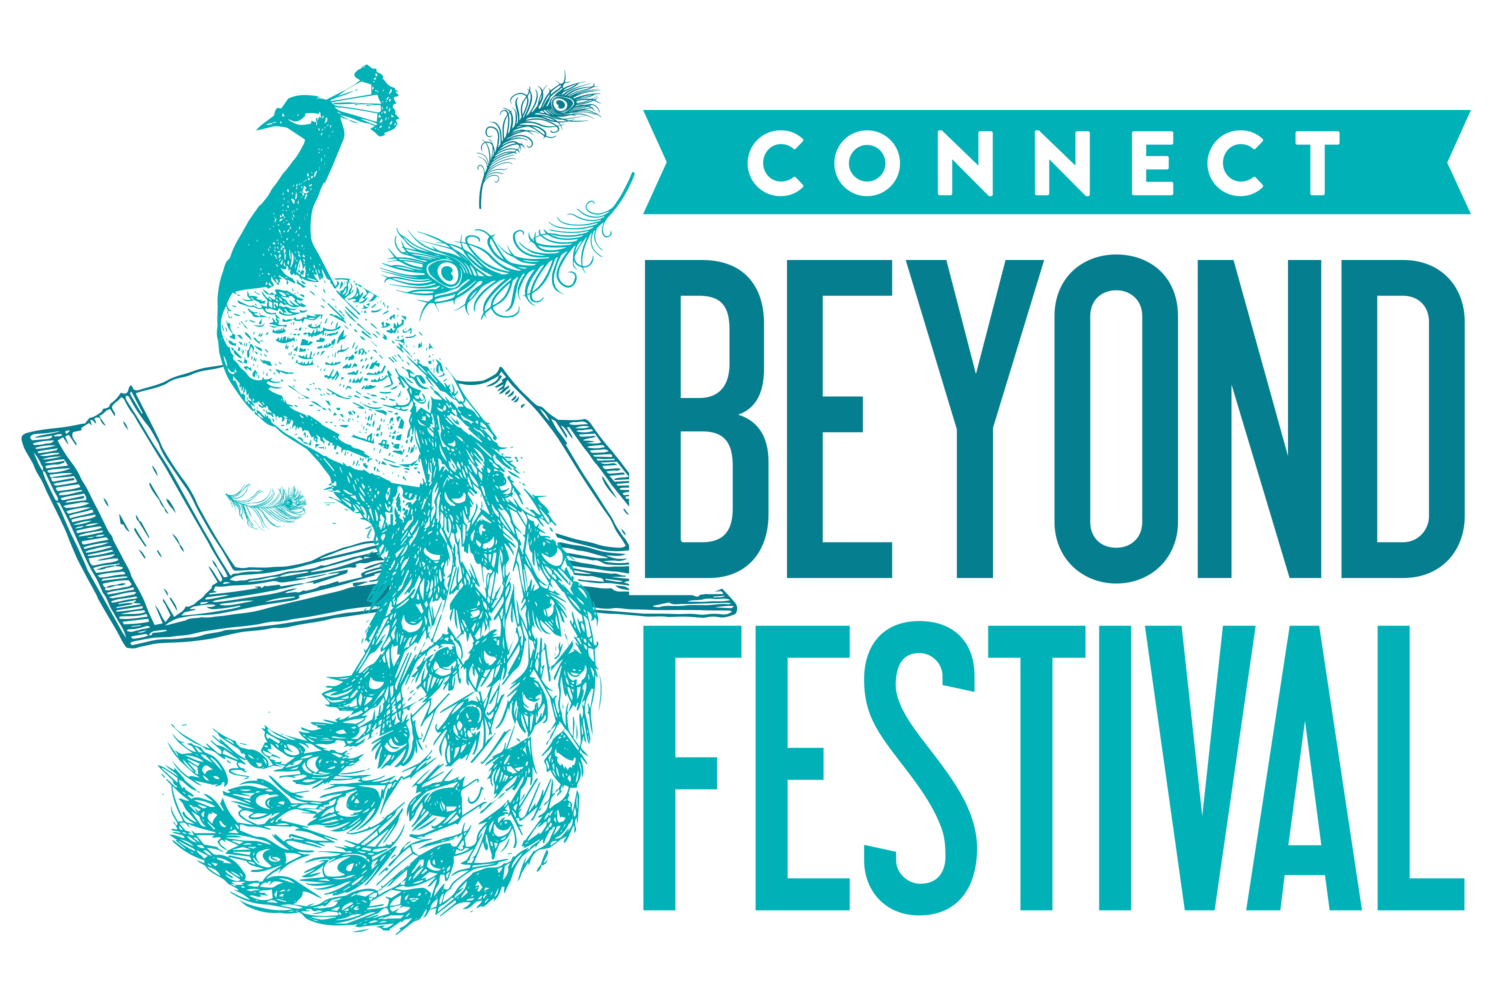 Connect Beyond Festival